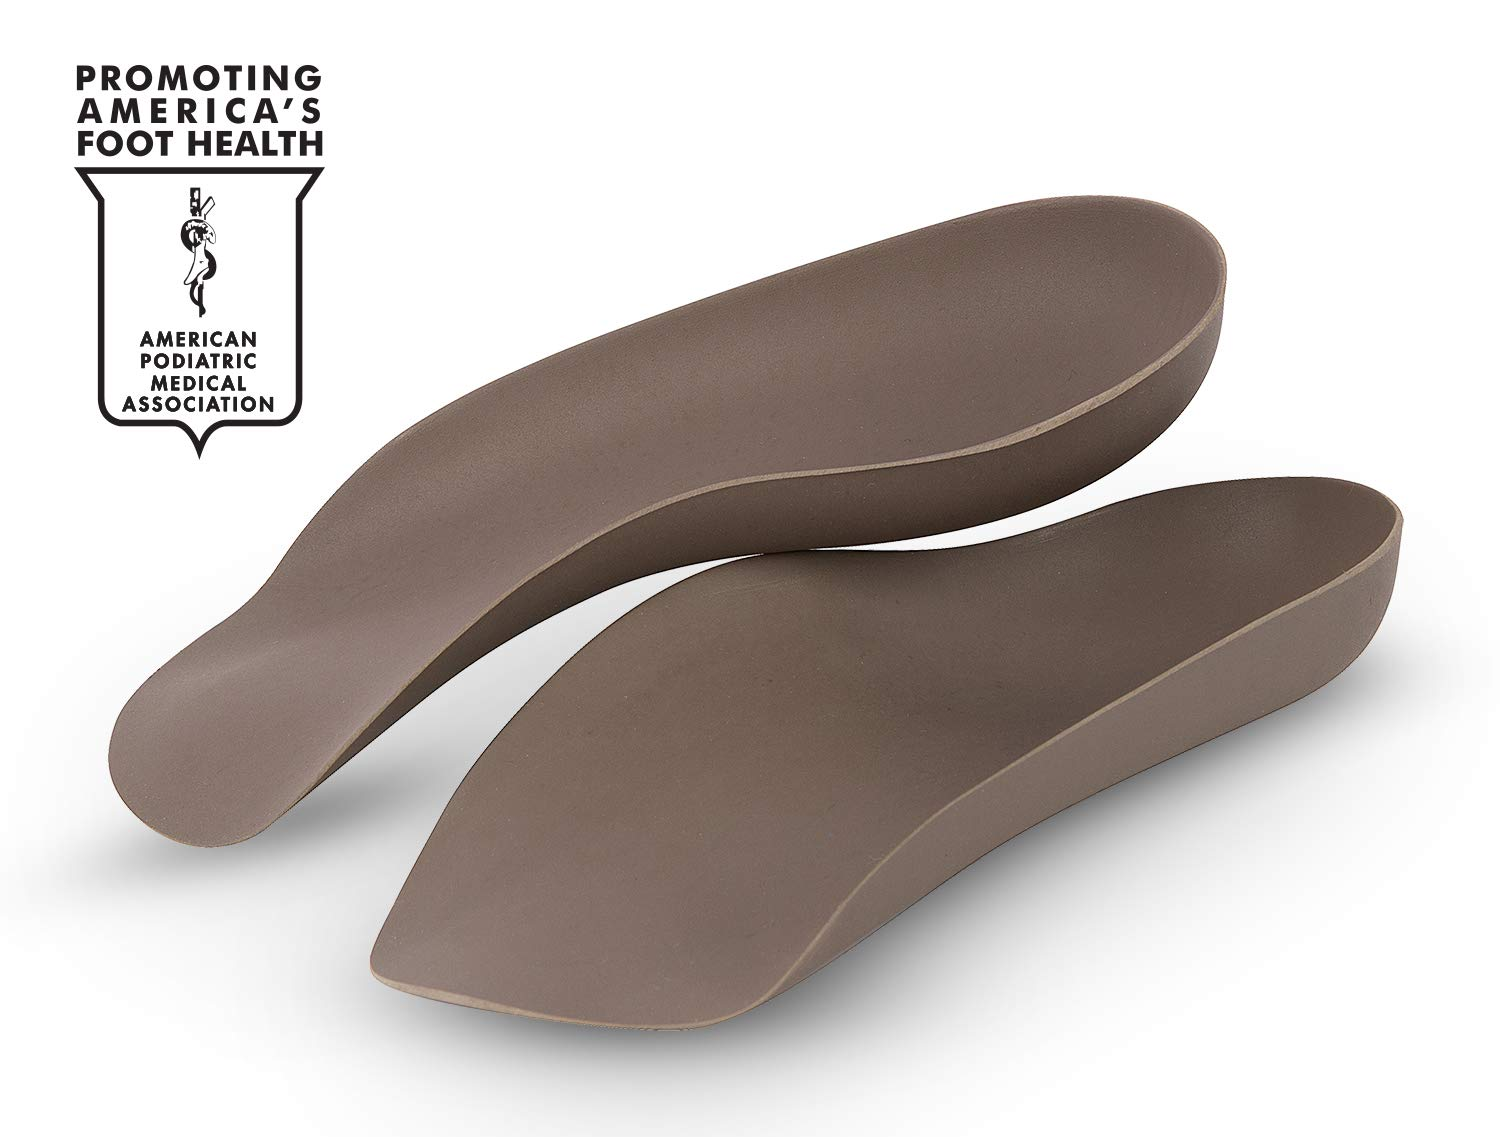 COREFIT SELF MOLDABLE CUSTOM ORTHOTICS (Podiatrist Grade 3/4 Shoe Inserts) for Plantar Fasciitis, Arch Pain & Heel Pain. Dress & Sport Arch Supports (Rigid Orthotics, Handcrafted in USA) W9/Big Kids 7